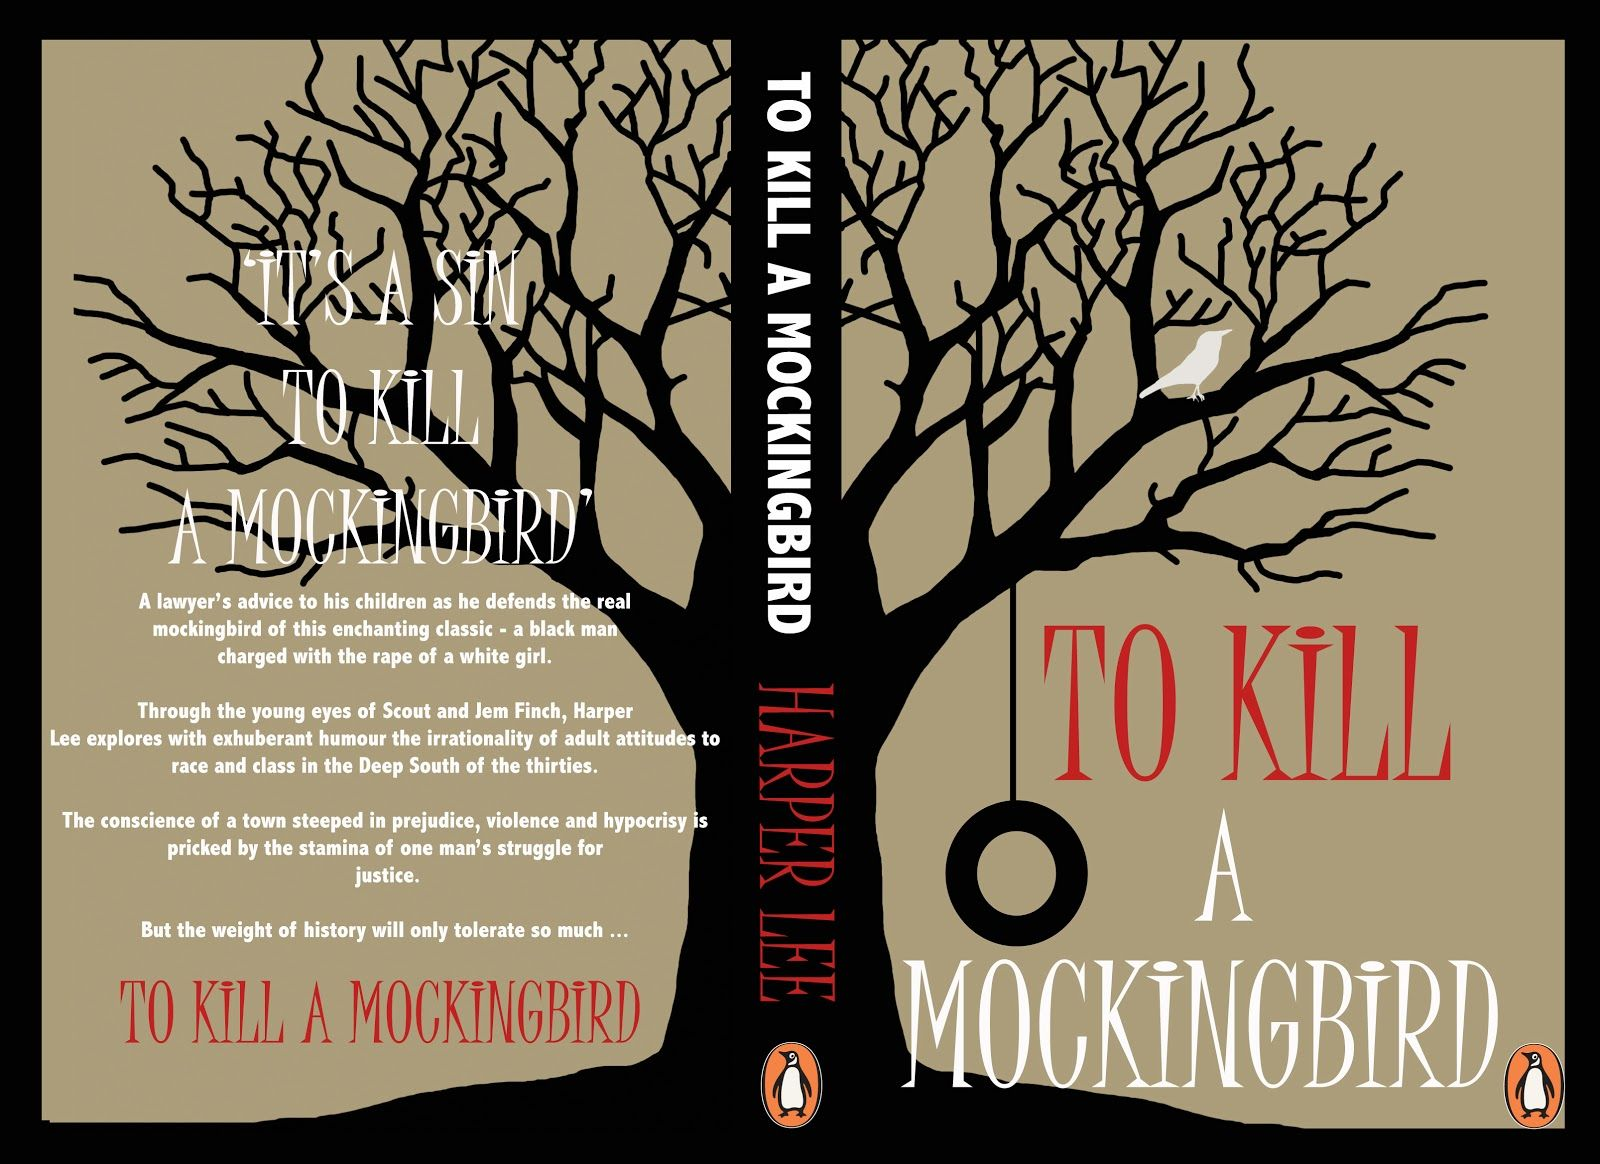 17 best images about to kill a mocking bird book cover on 17 best images about to kill a mocking bird book cover to kill a mockingbird atticus finch and classic